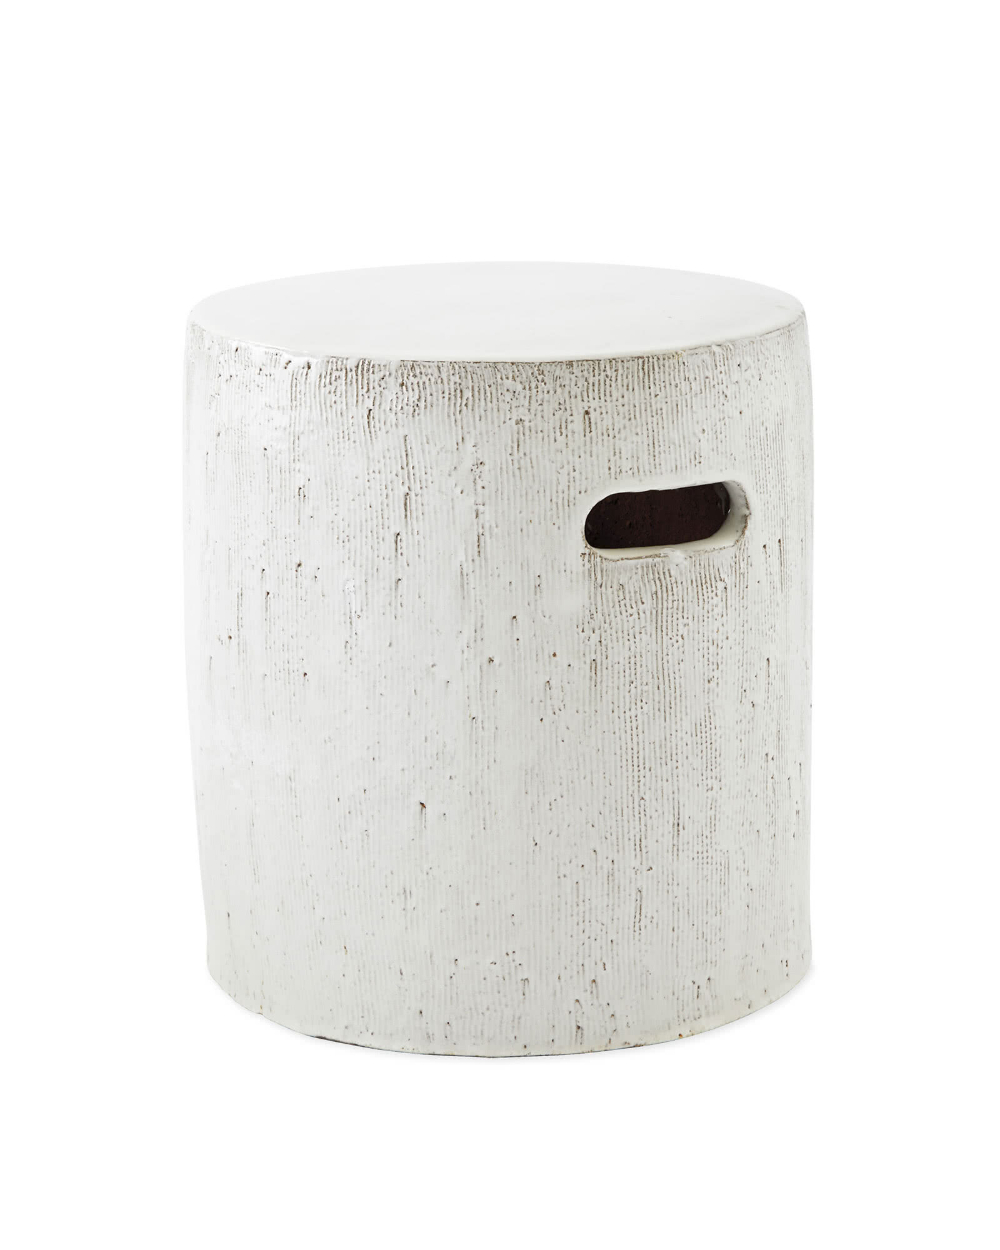 Shoreline Side Table | Ceramic Stool, Living Room Side Table With Regard To Oakside Ceramic Garden Stools (View 21 of 25)